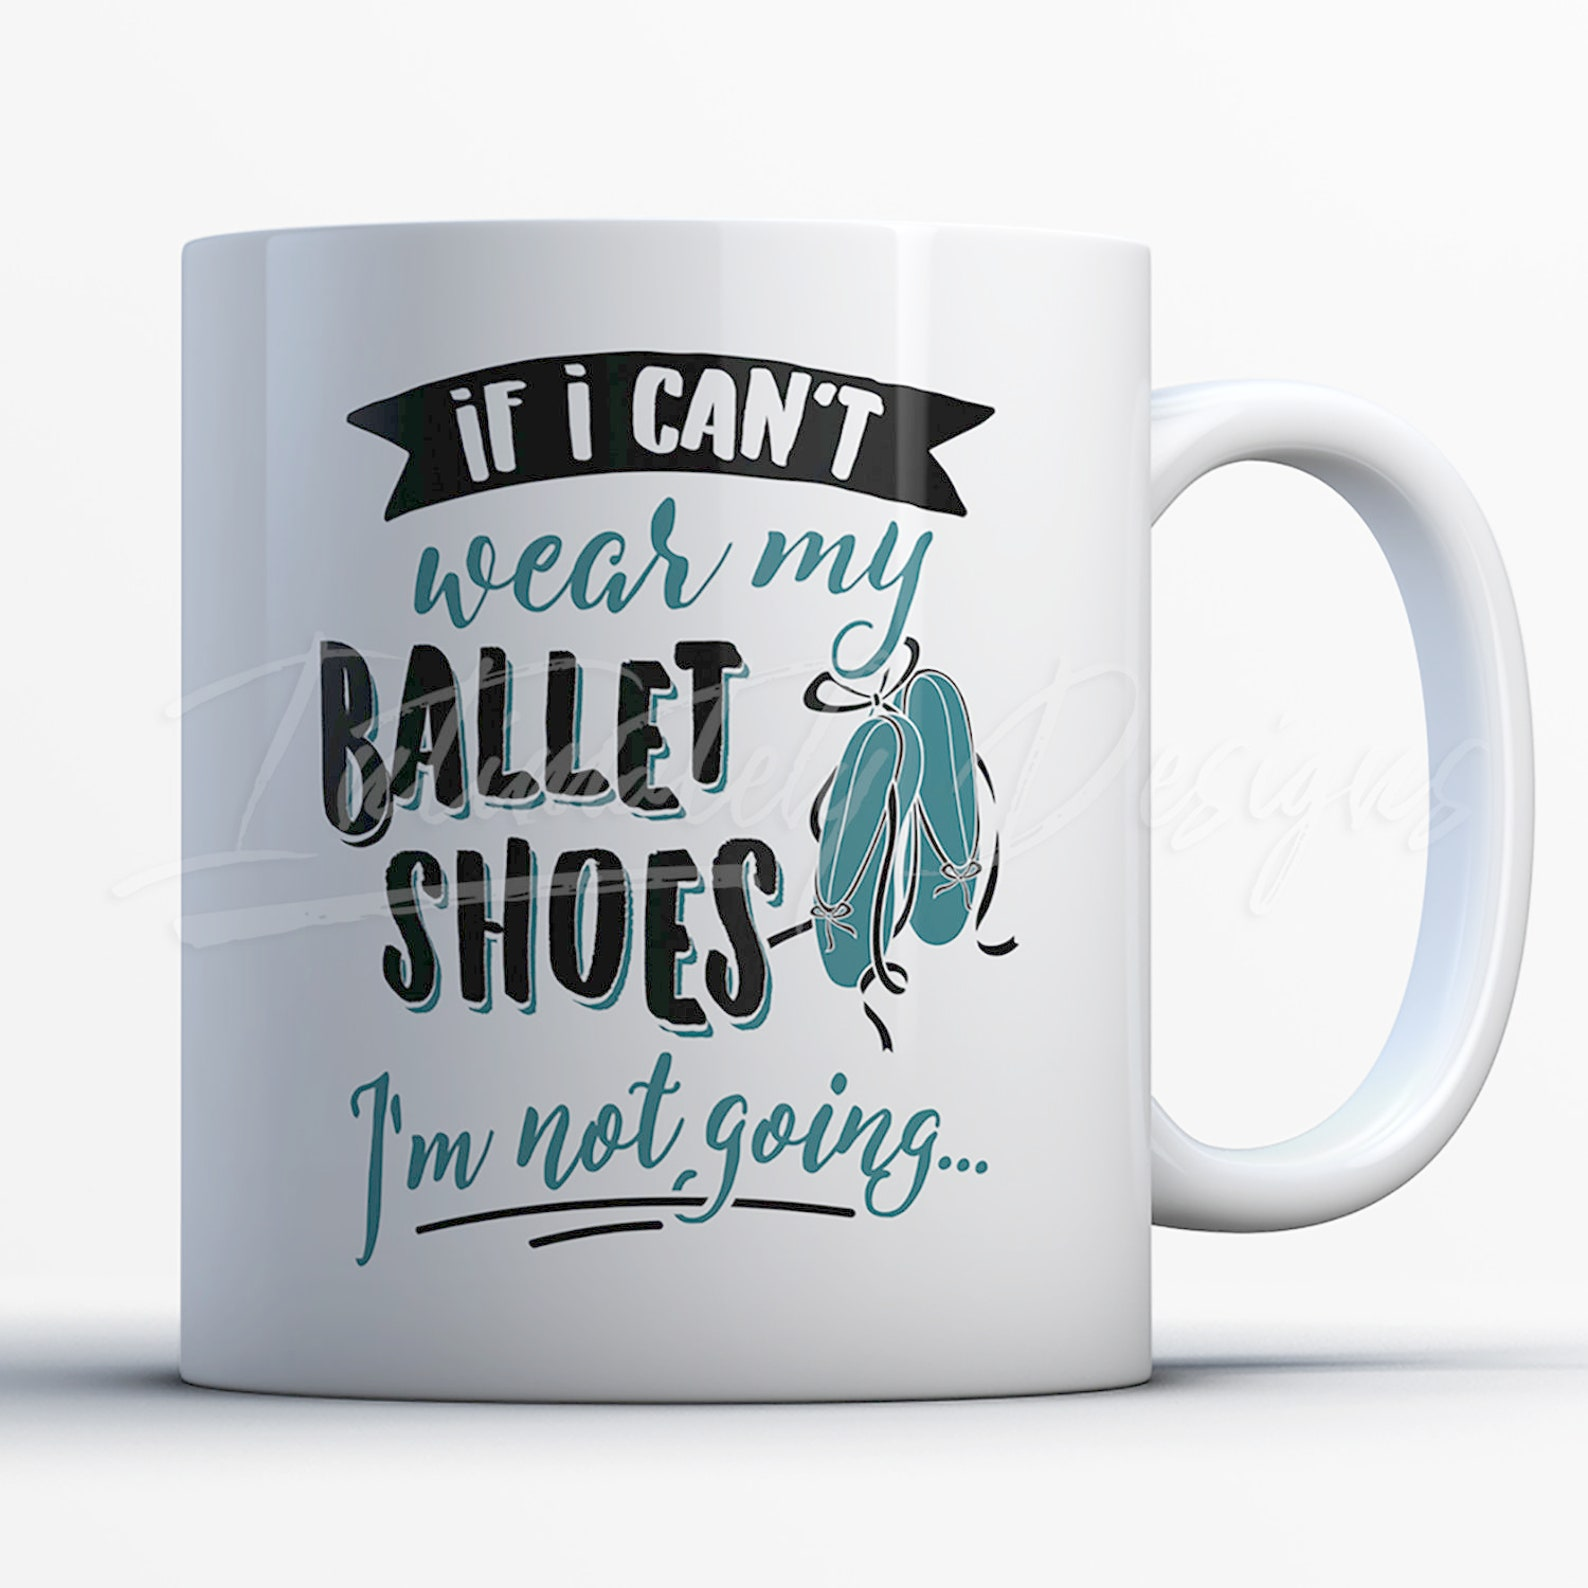 ballet mug | loves ballet gift | ballet shoes | cute ballet gift for her women | funny birthday gift